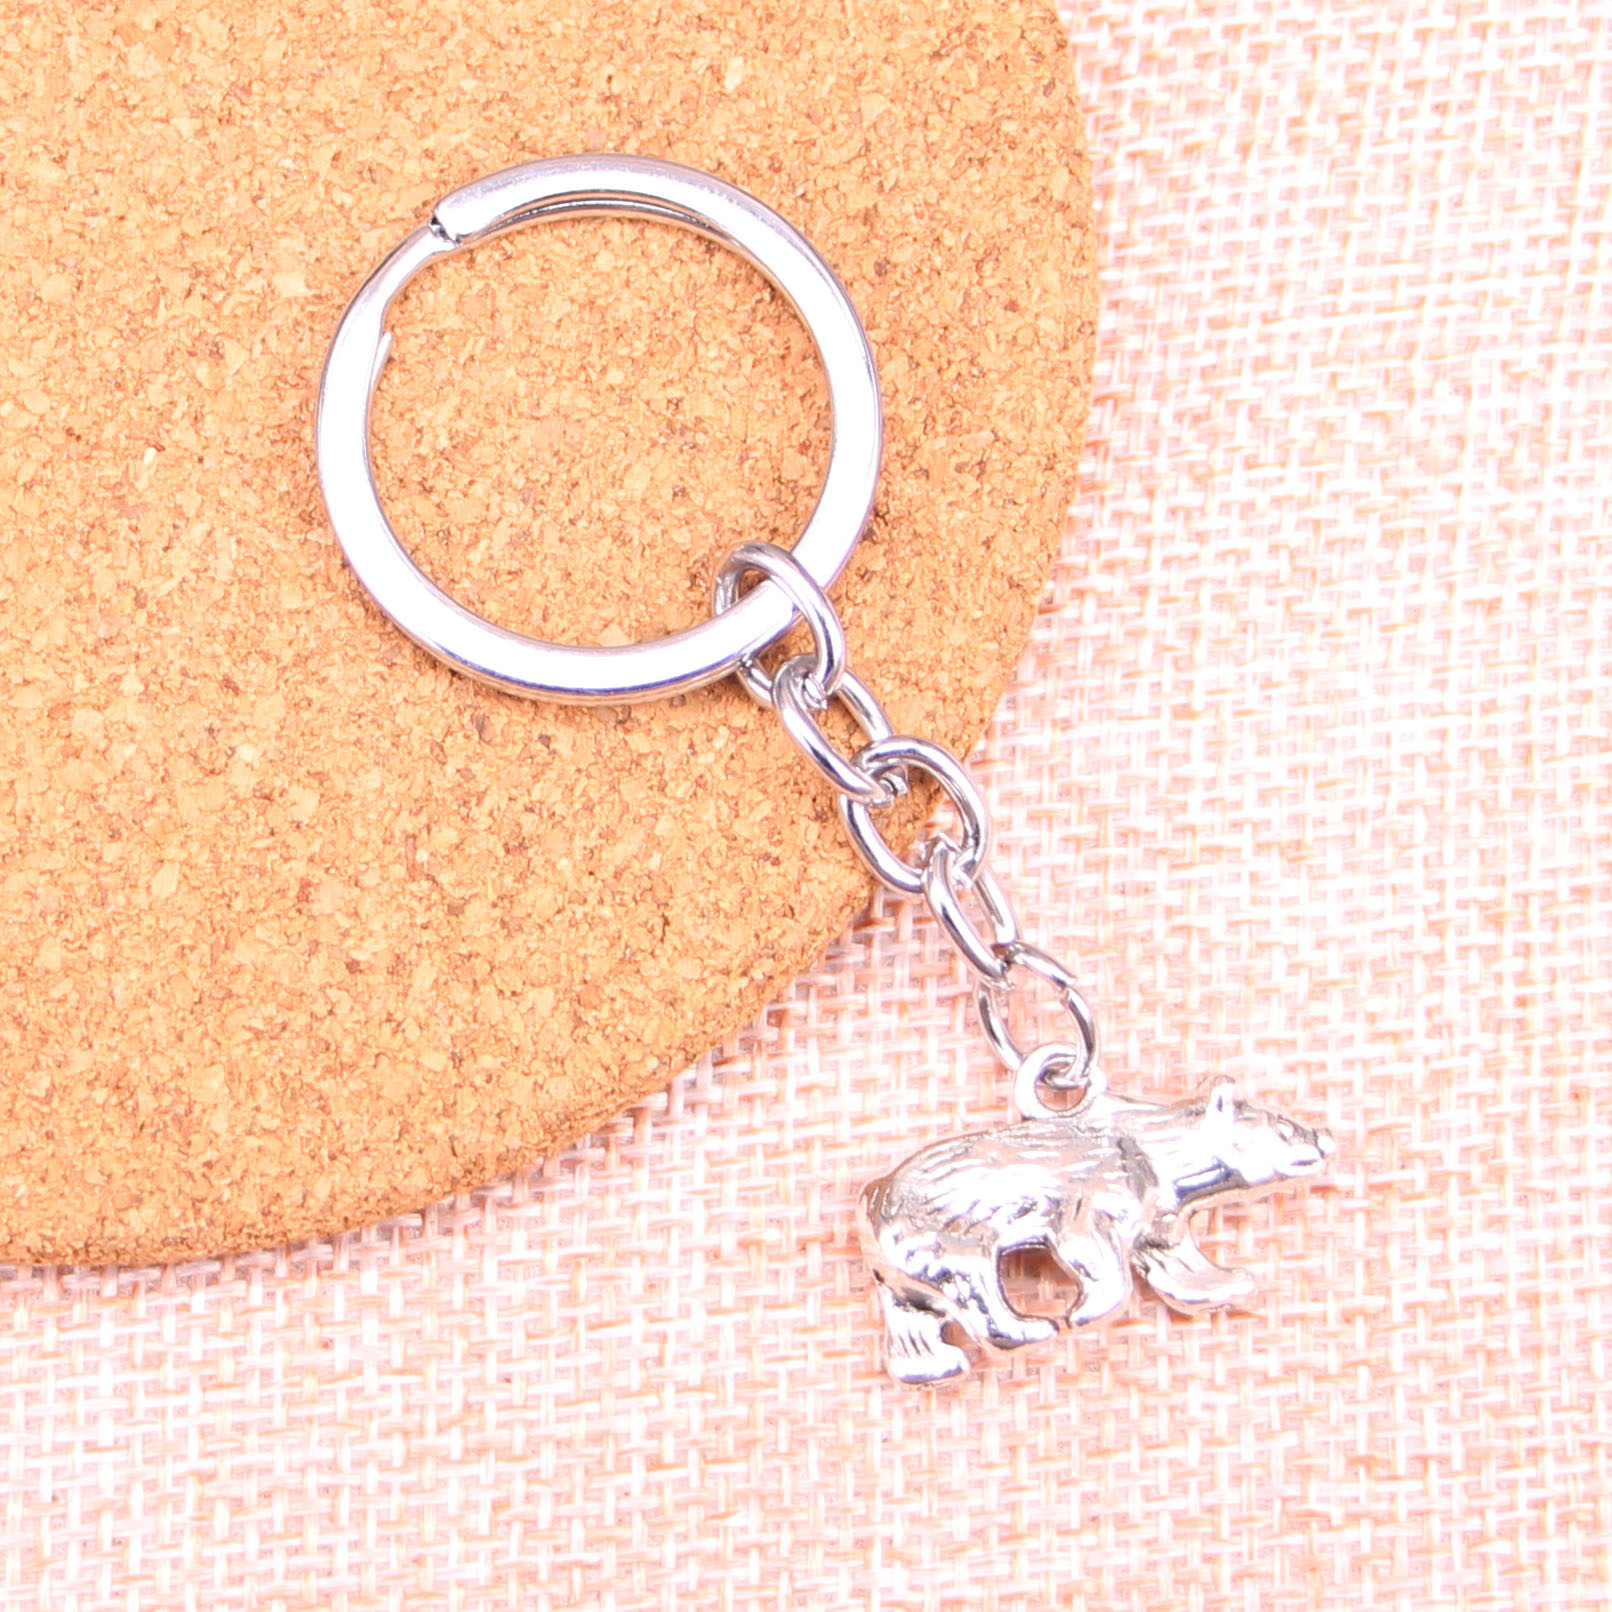 New Arrival bear california Charm Pendant Keychain Key Ring Chain Accessories Jewelry Making For Gifts(China)